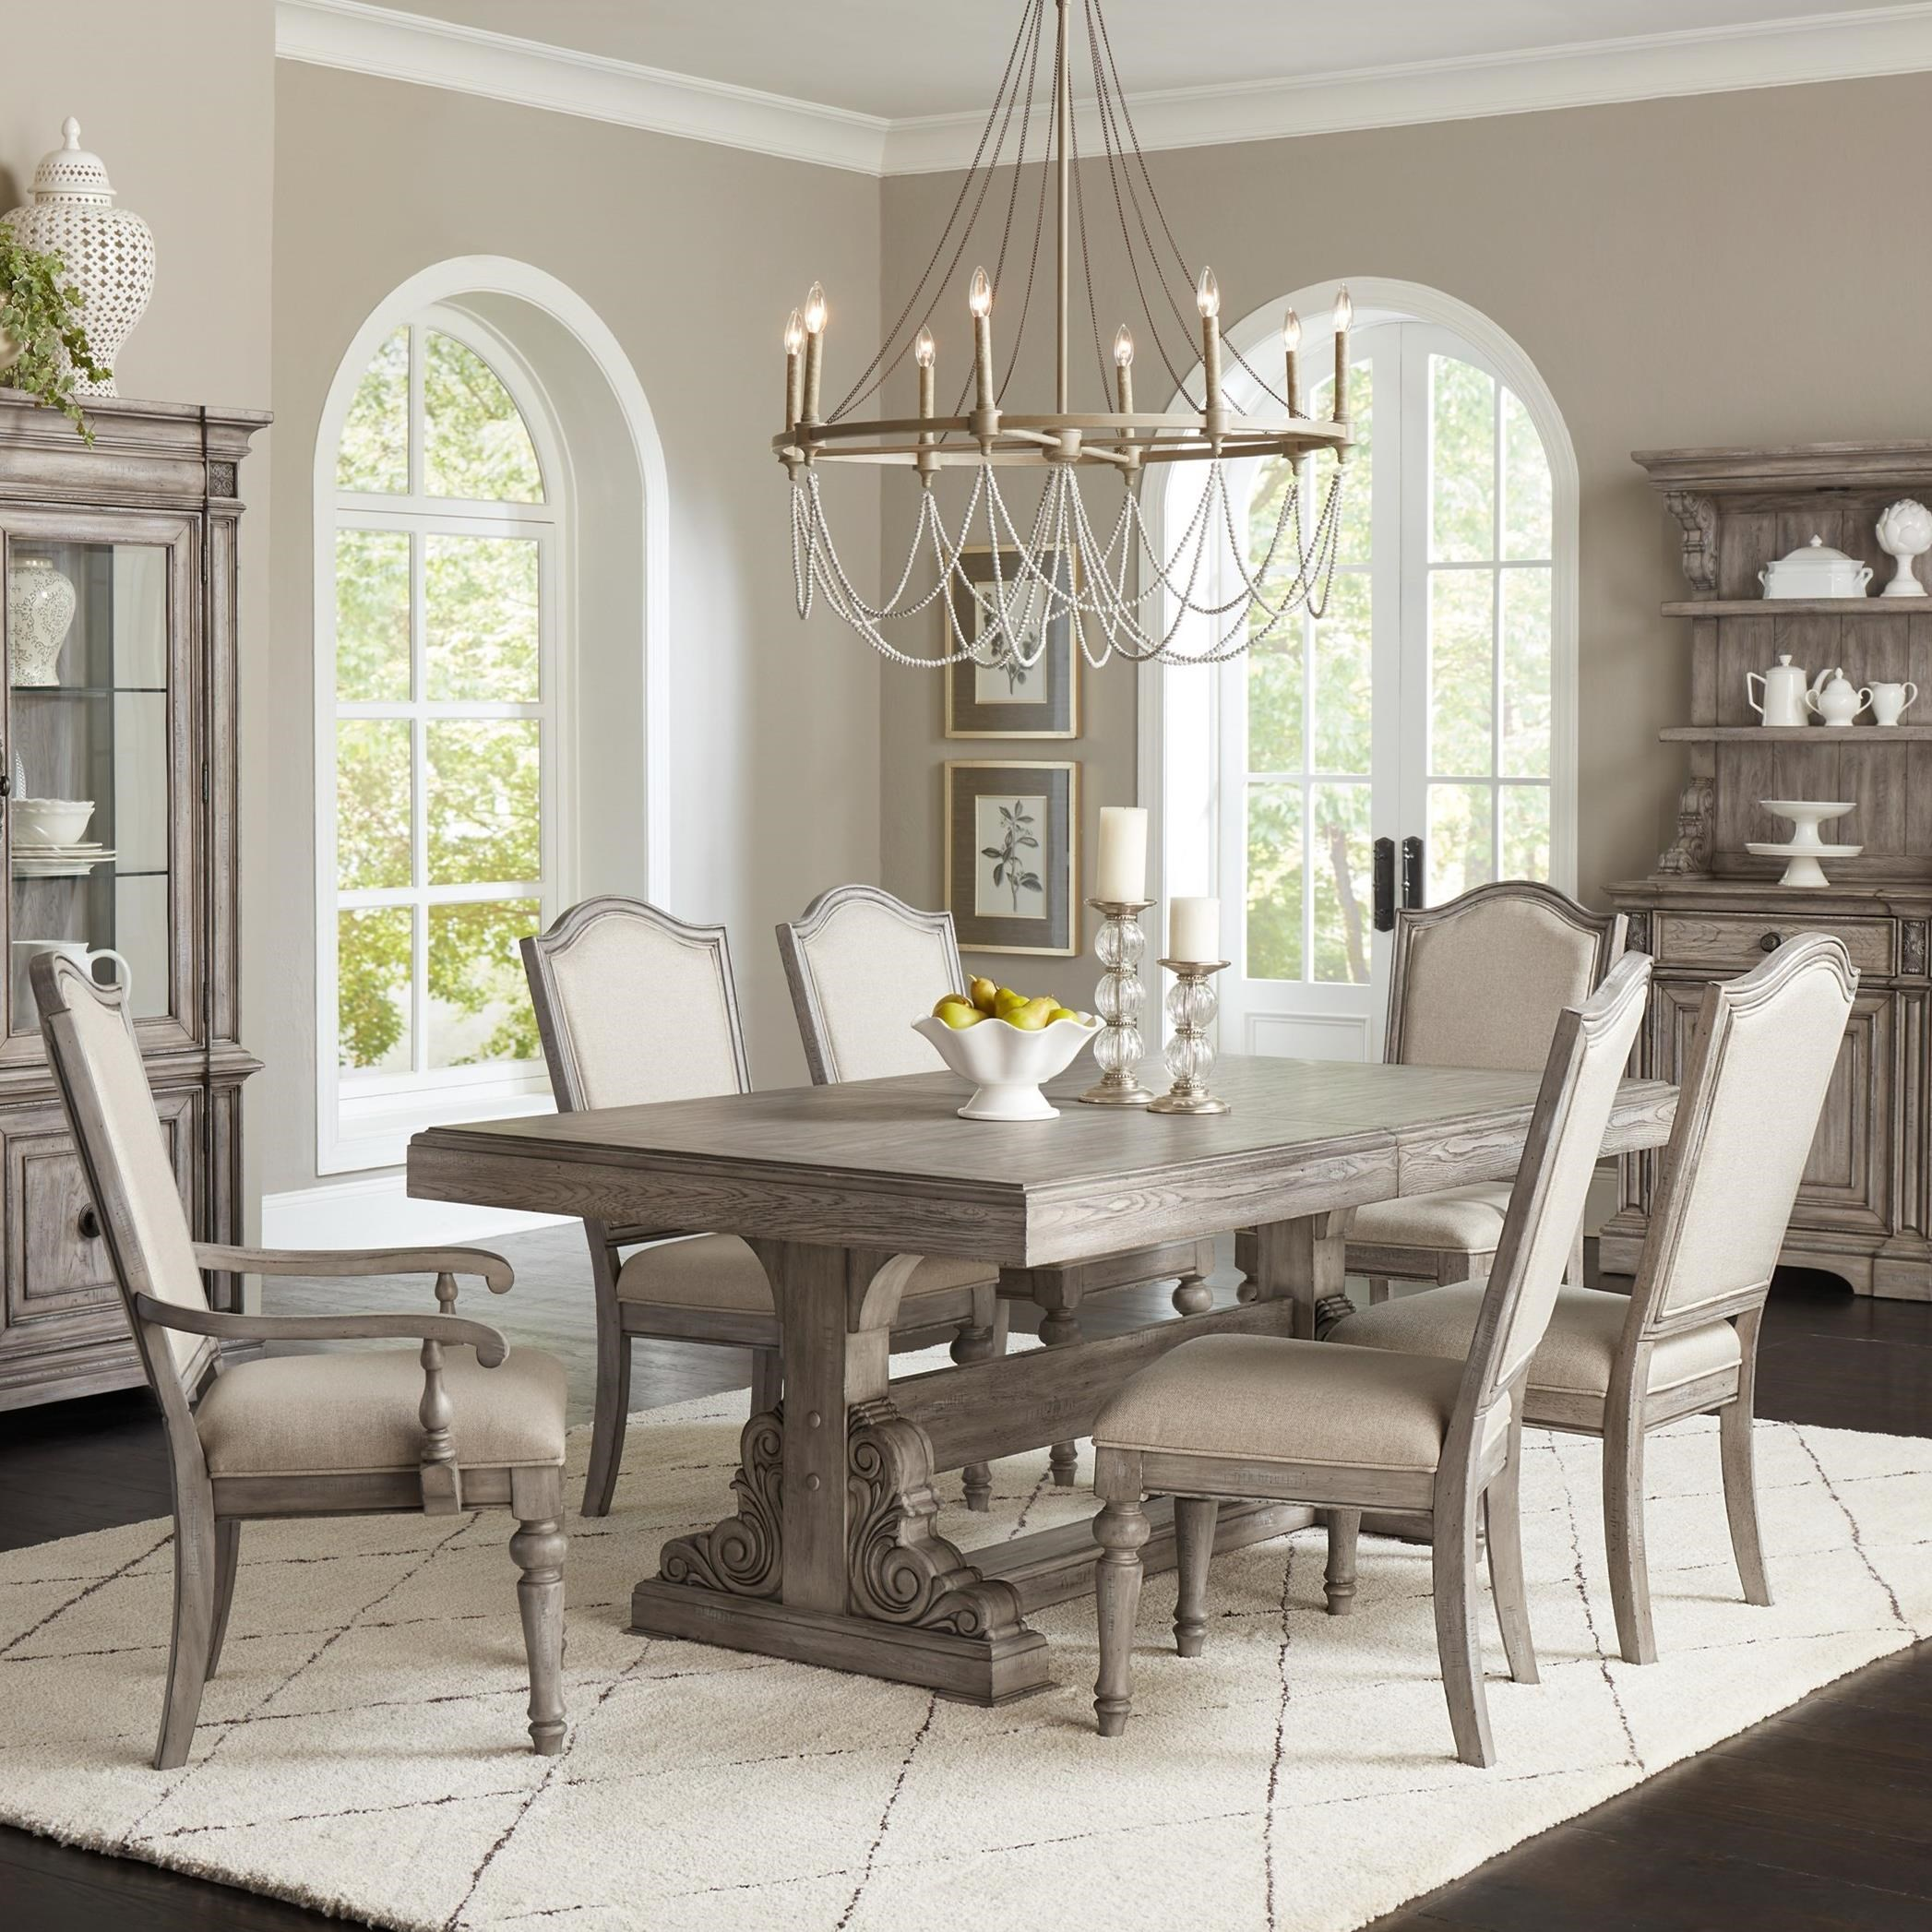 Windmere 7-Piece Table and Chair Set by Klaussner International at Northeast Factory Direct